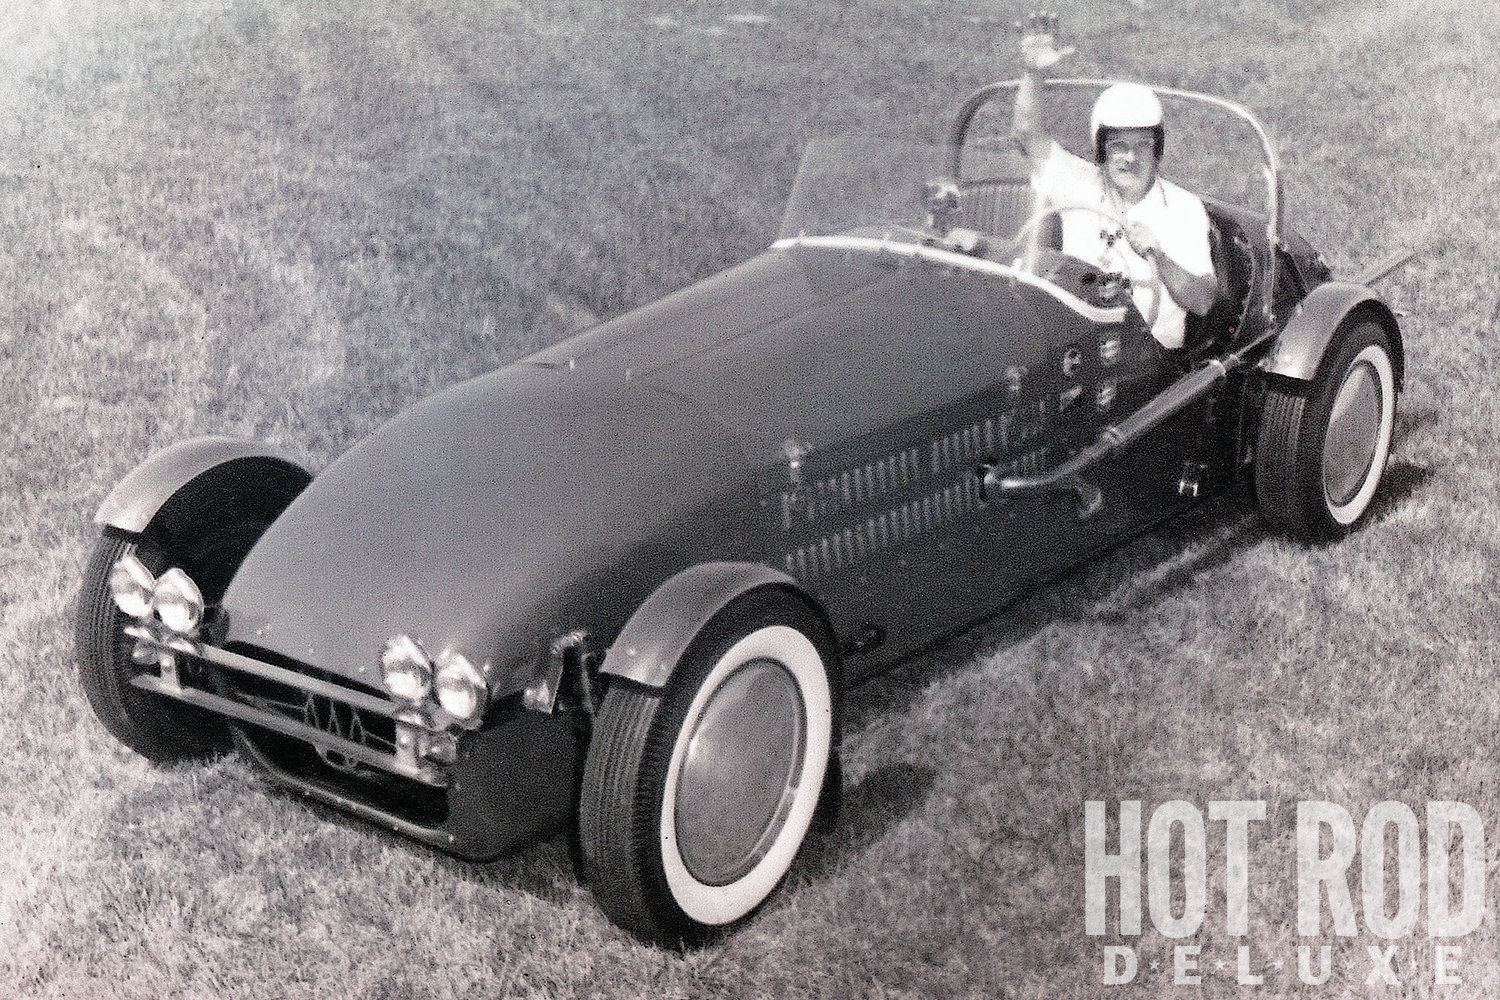 Here's the brand-new Williams Special with designer-builder-driver Ed Williams in an undated mid-'50s photo. The only noticeable external differences between this original, Olds-powered configuration and the current version are the exhaust system and solid side panels that Ed fabricated in 1962 for his 427 Ford transplant.